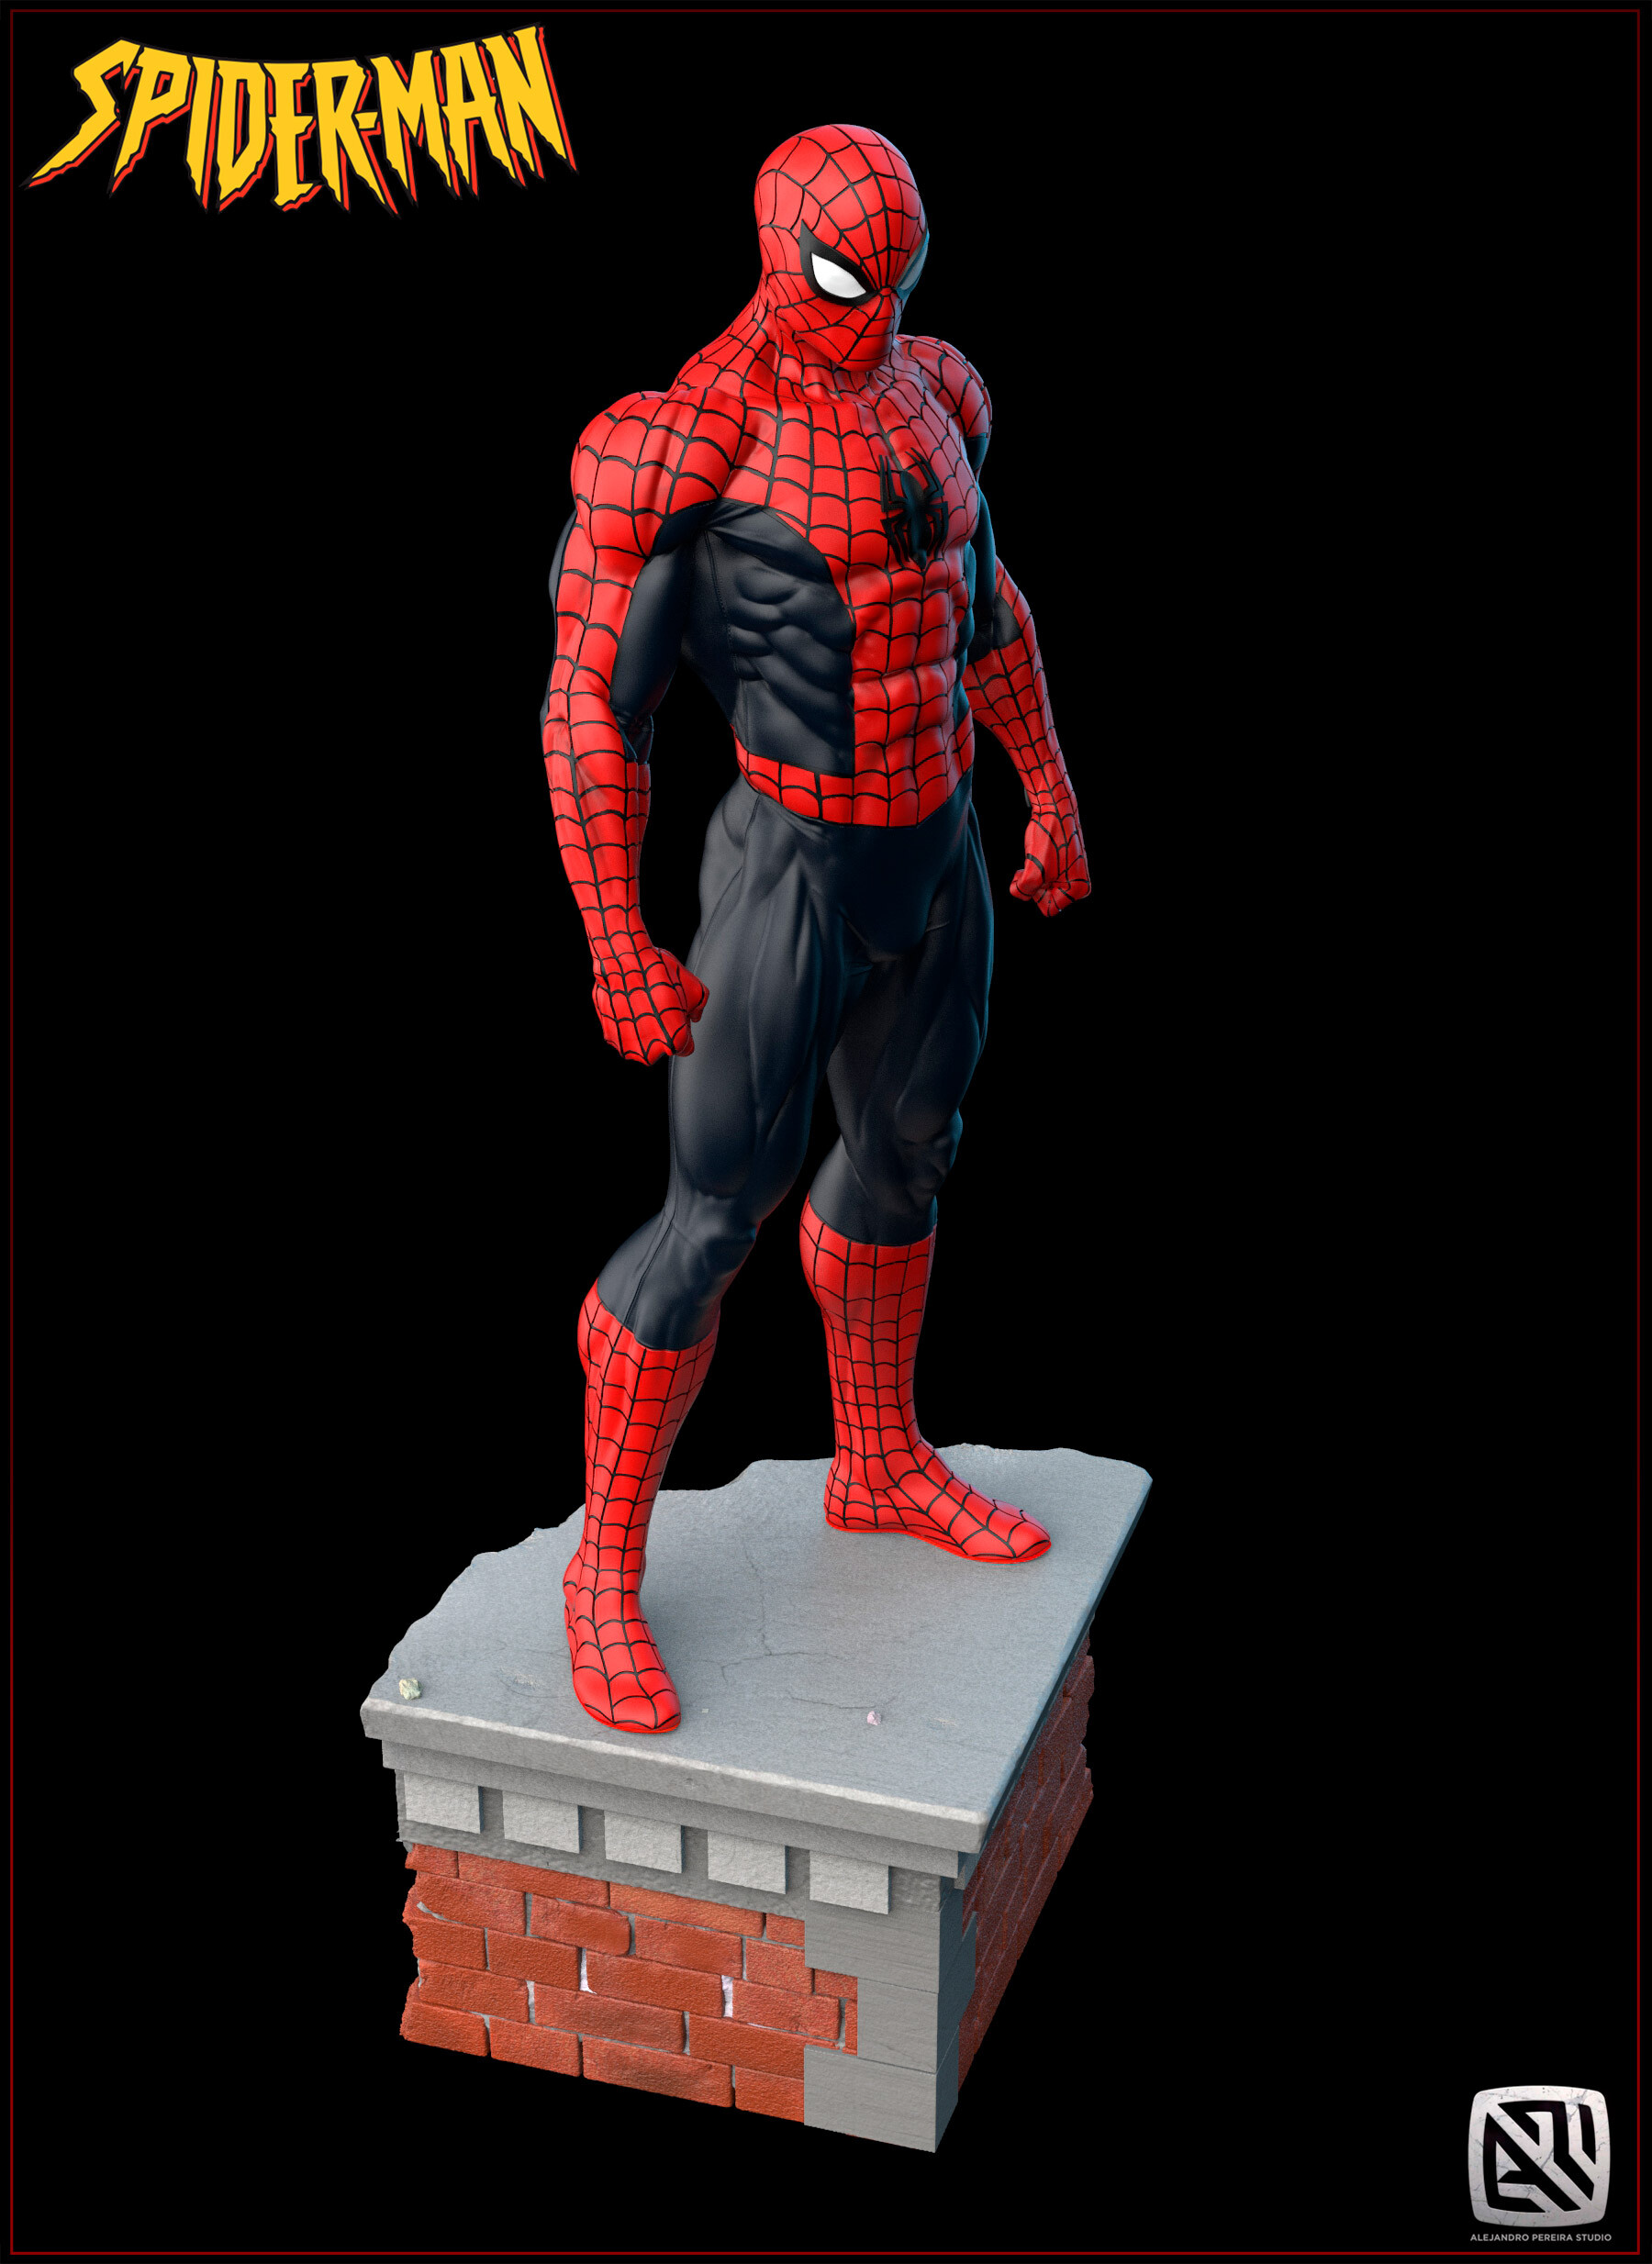 Alejandro pereira spidey render color 015